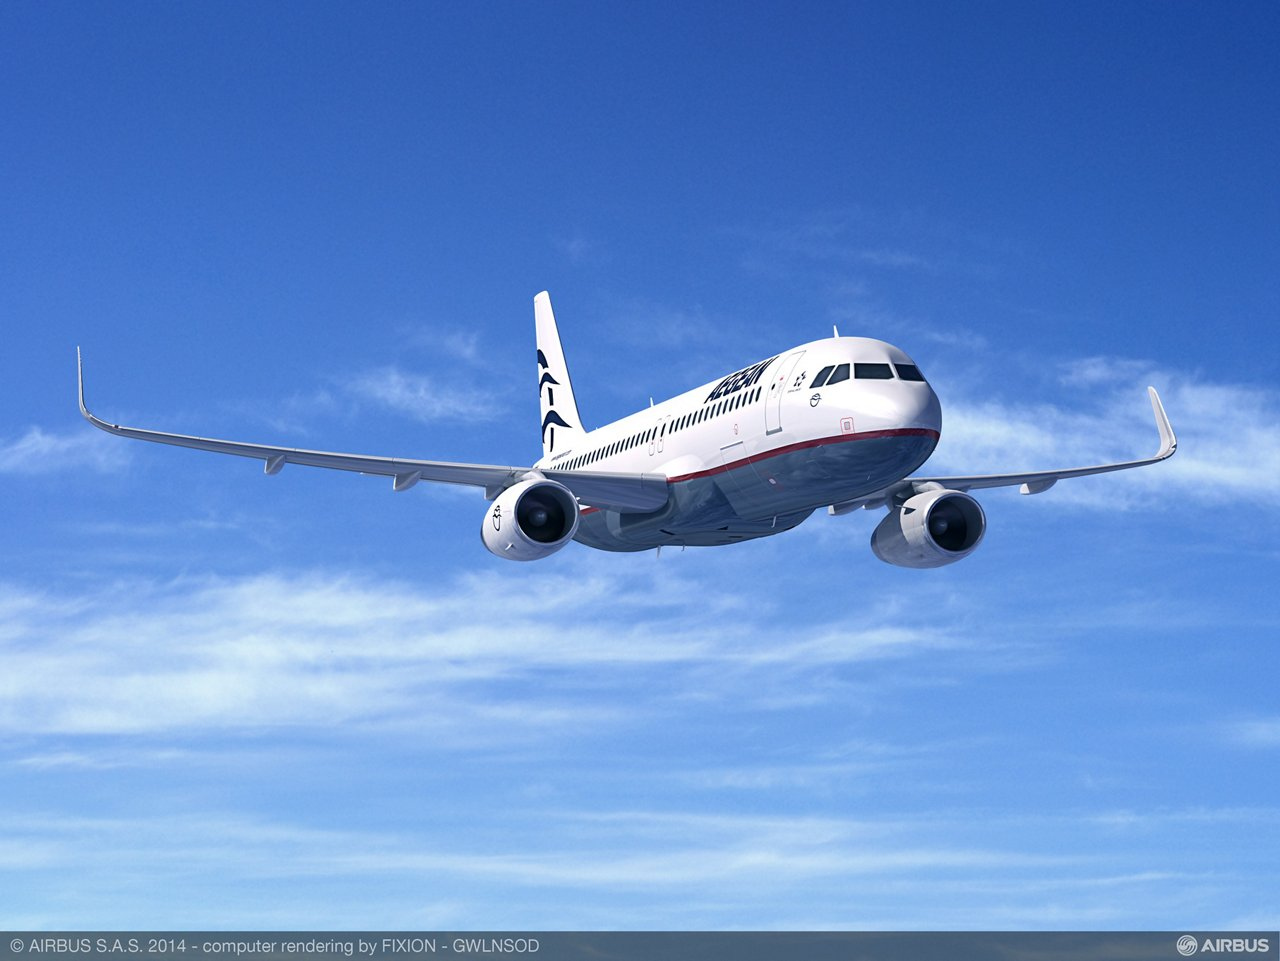 Aegean Airlines' firm contract with Airbus for two additional A320ceo aircraft, announced 28 August 2014, adds to this carrier's 2007 order for five A320s